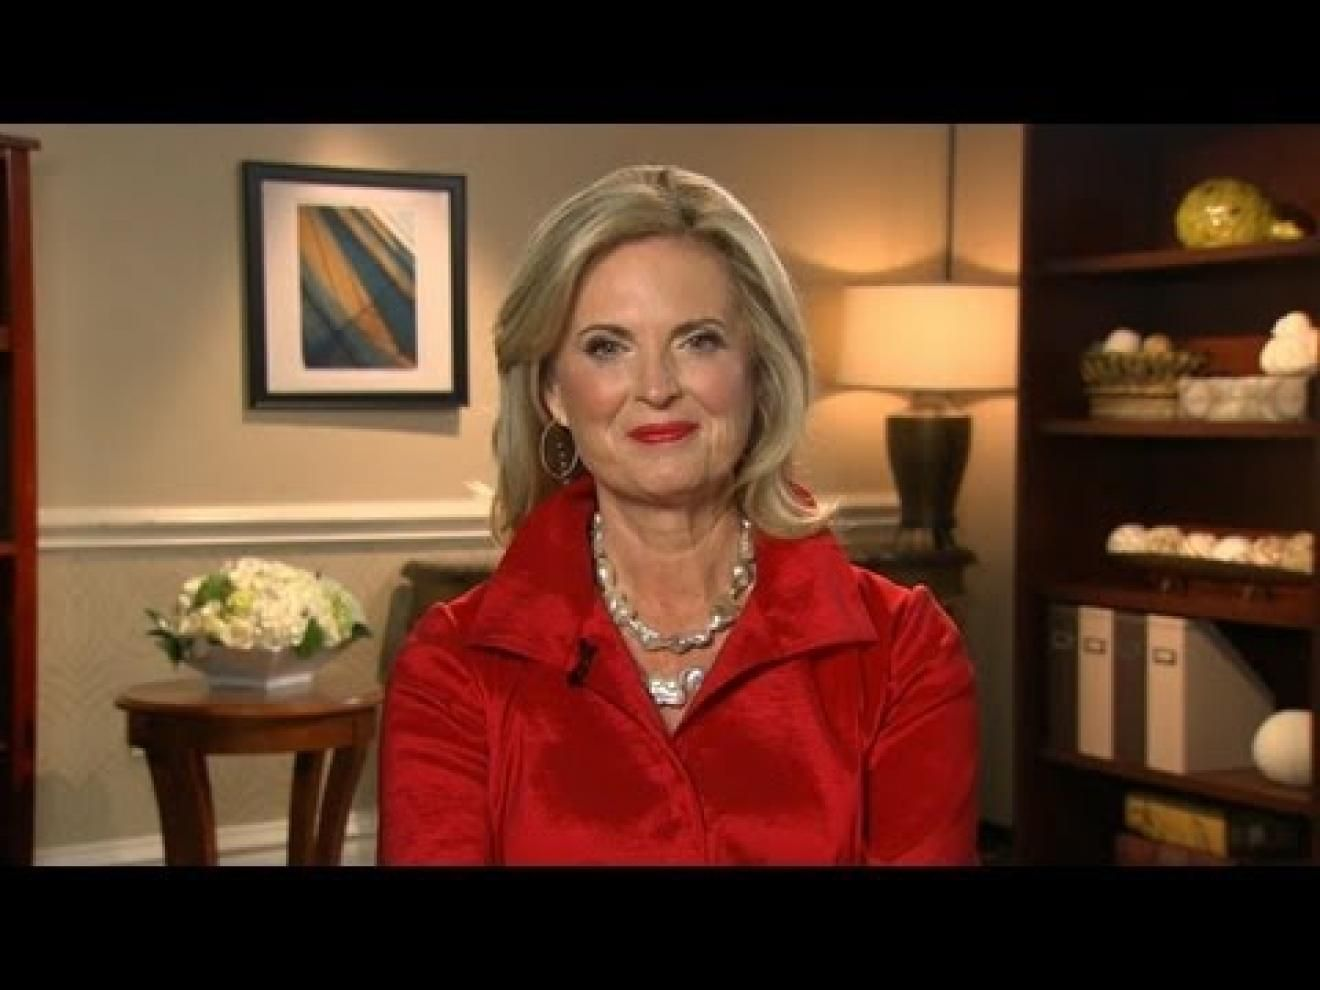 romneys republican national convention speech analysis What went down on day one of the republican convention filed  in the convention speech, these themes are often depicted through biography  ann romney's pitch to women voters in her speech.